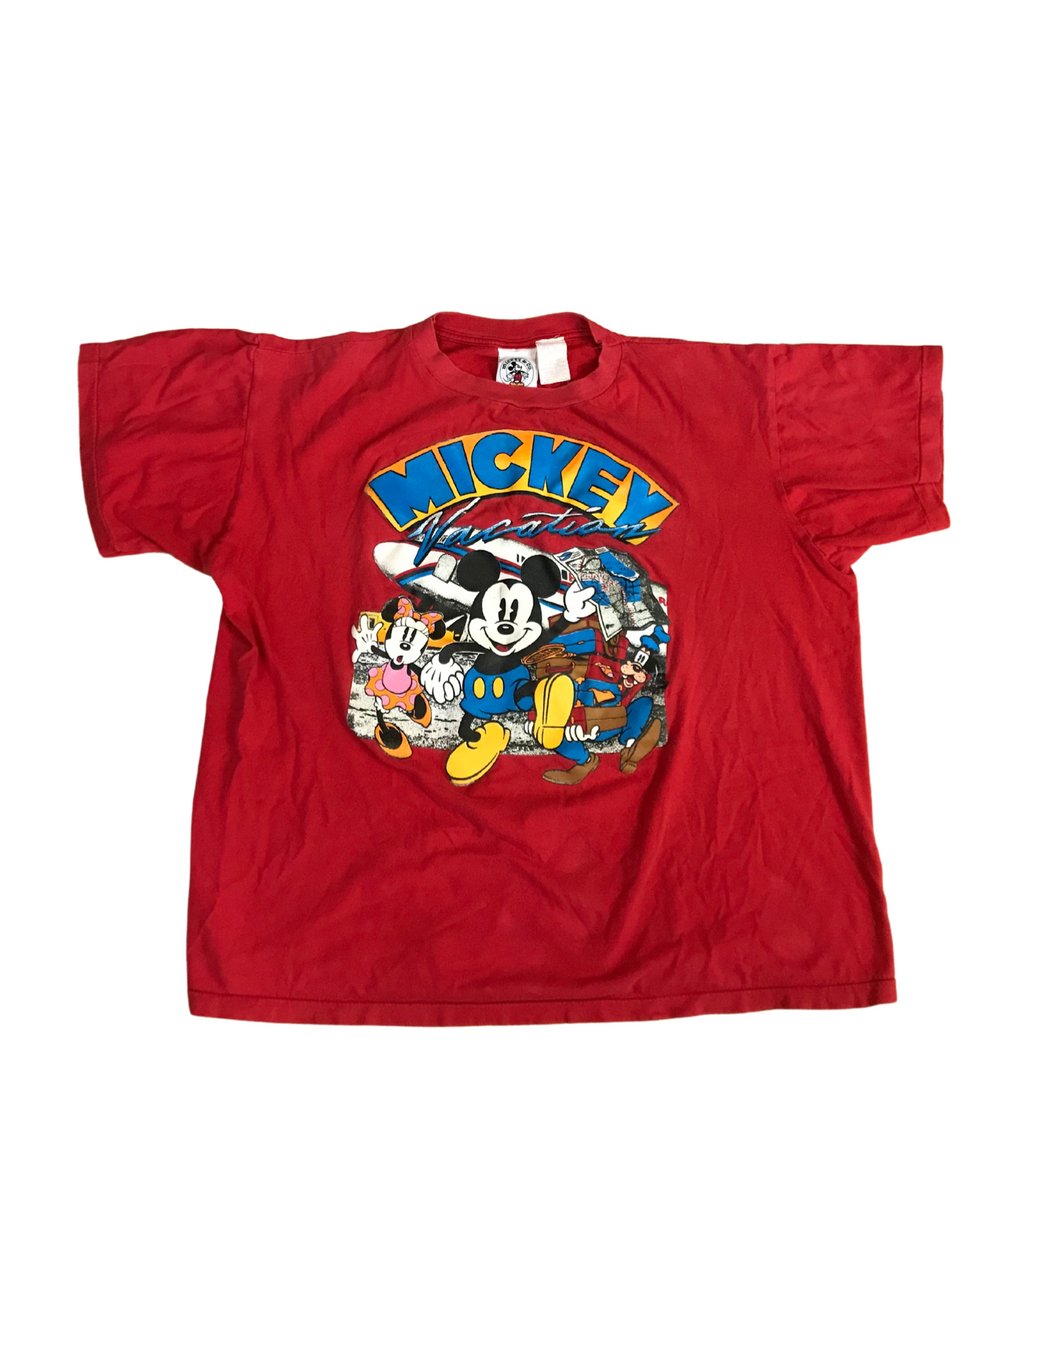 Vintage Red Mickey Mouse T shirt size L-XL 1990